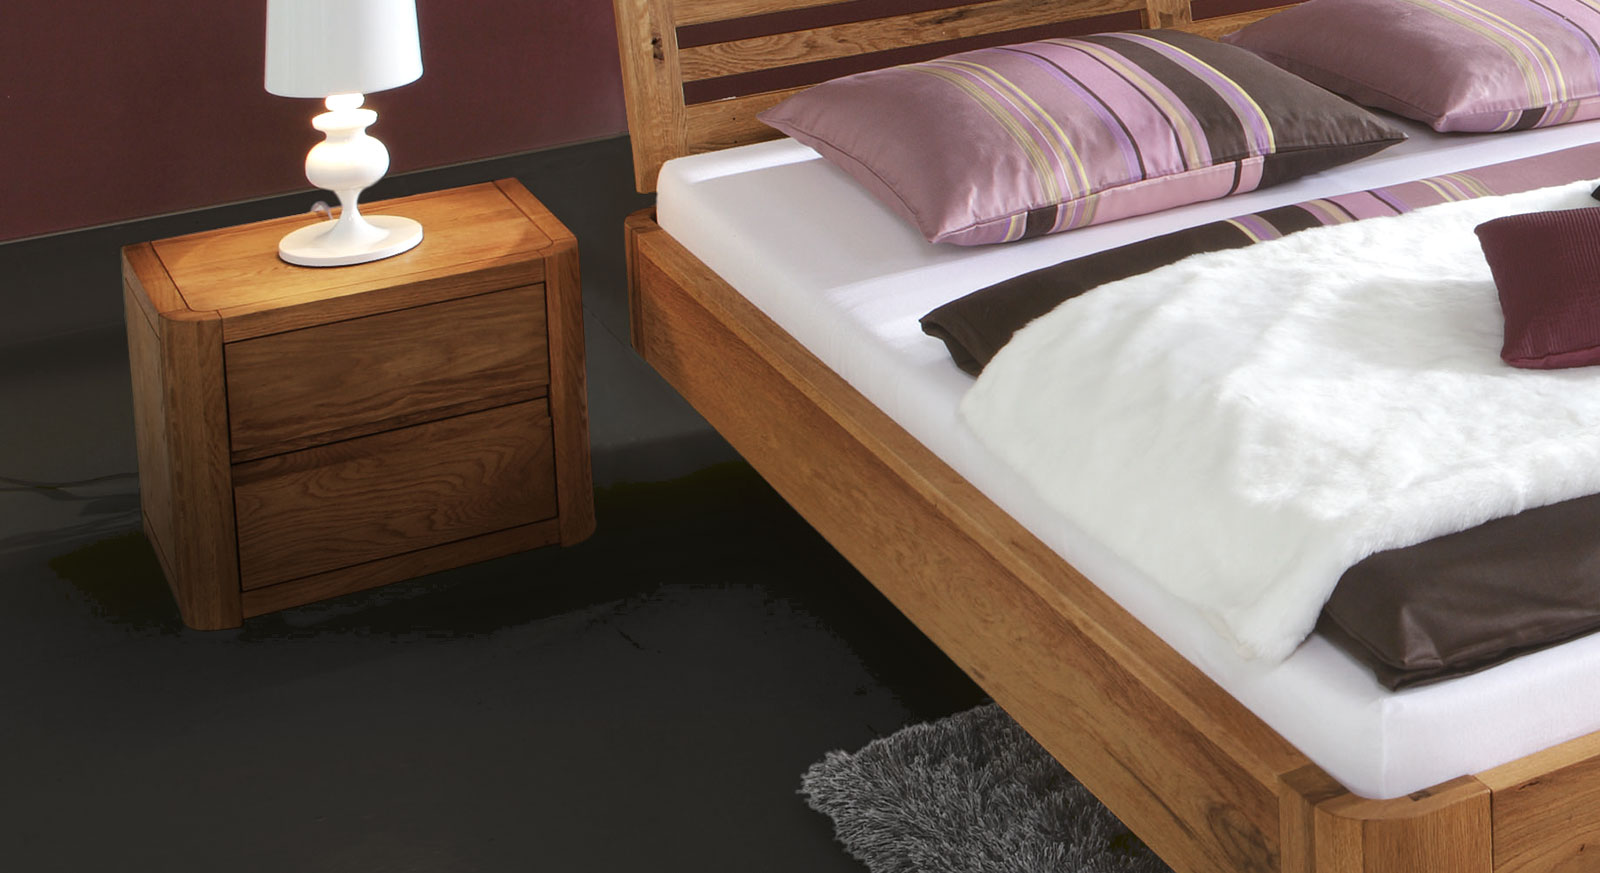 stylisches bett salerno aus eiche g nstig kaufen. Black Bedroom Furniture Sets. Home Design Ideas